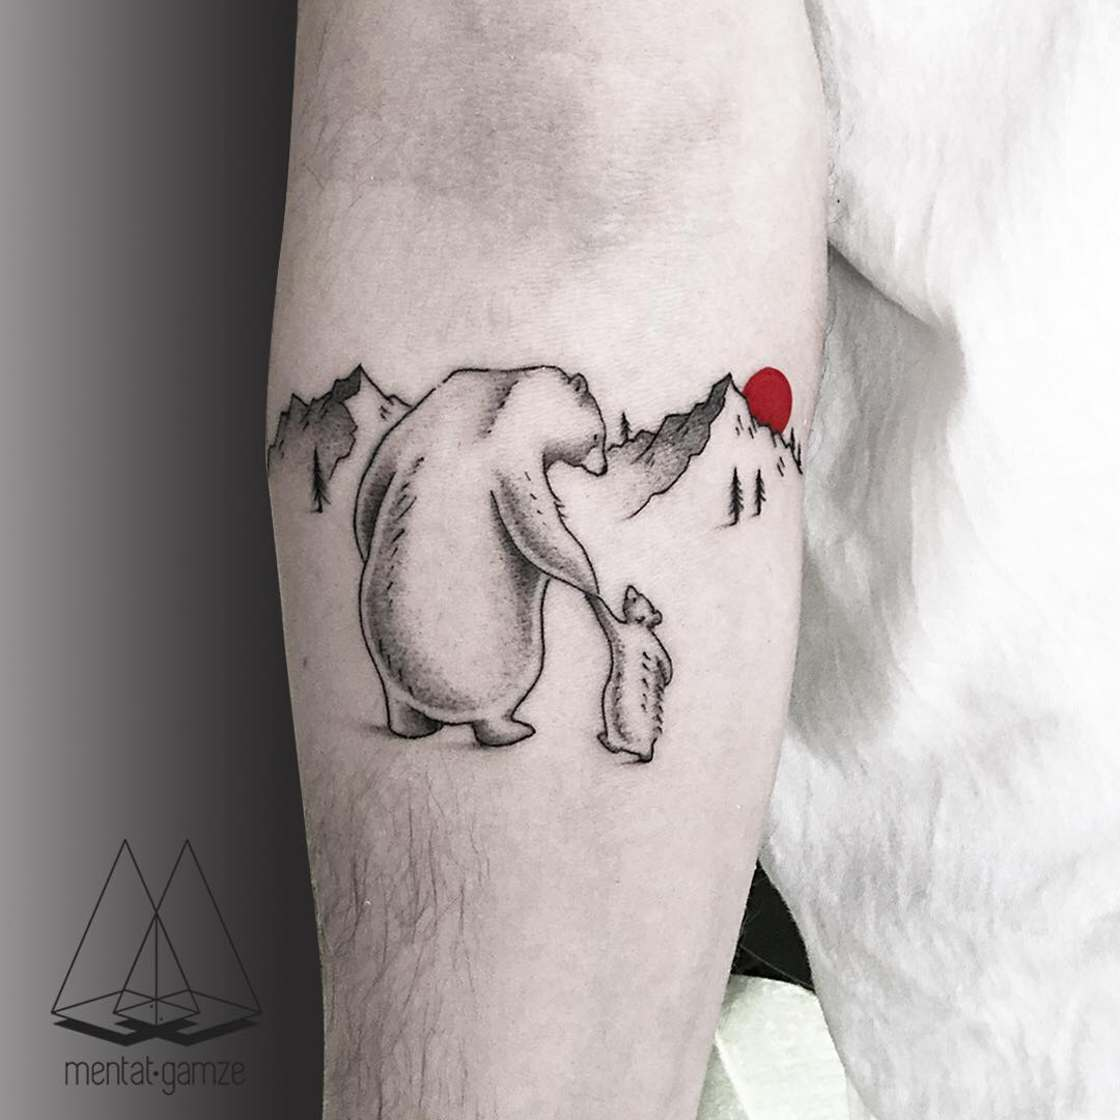 The Red Dot - The poetic tattoos of Mentat Gamze